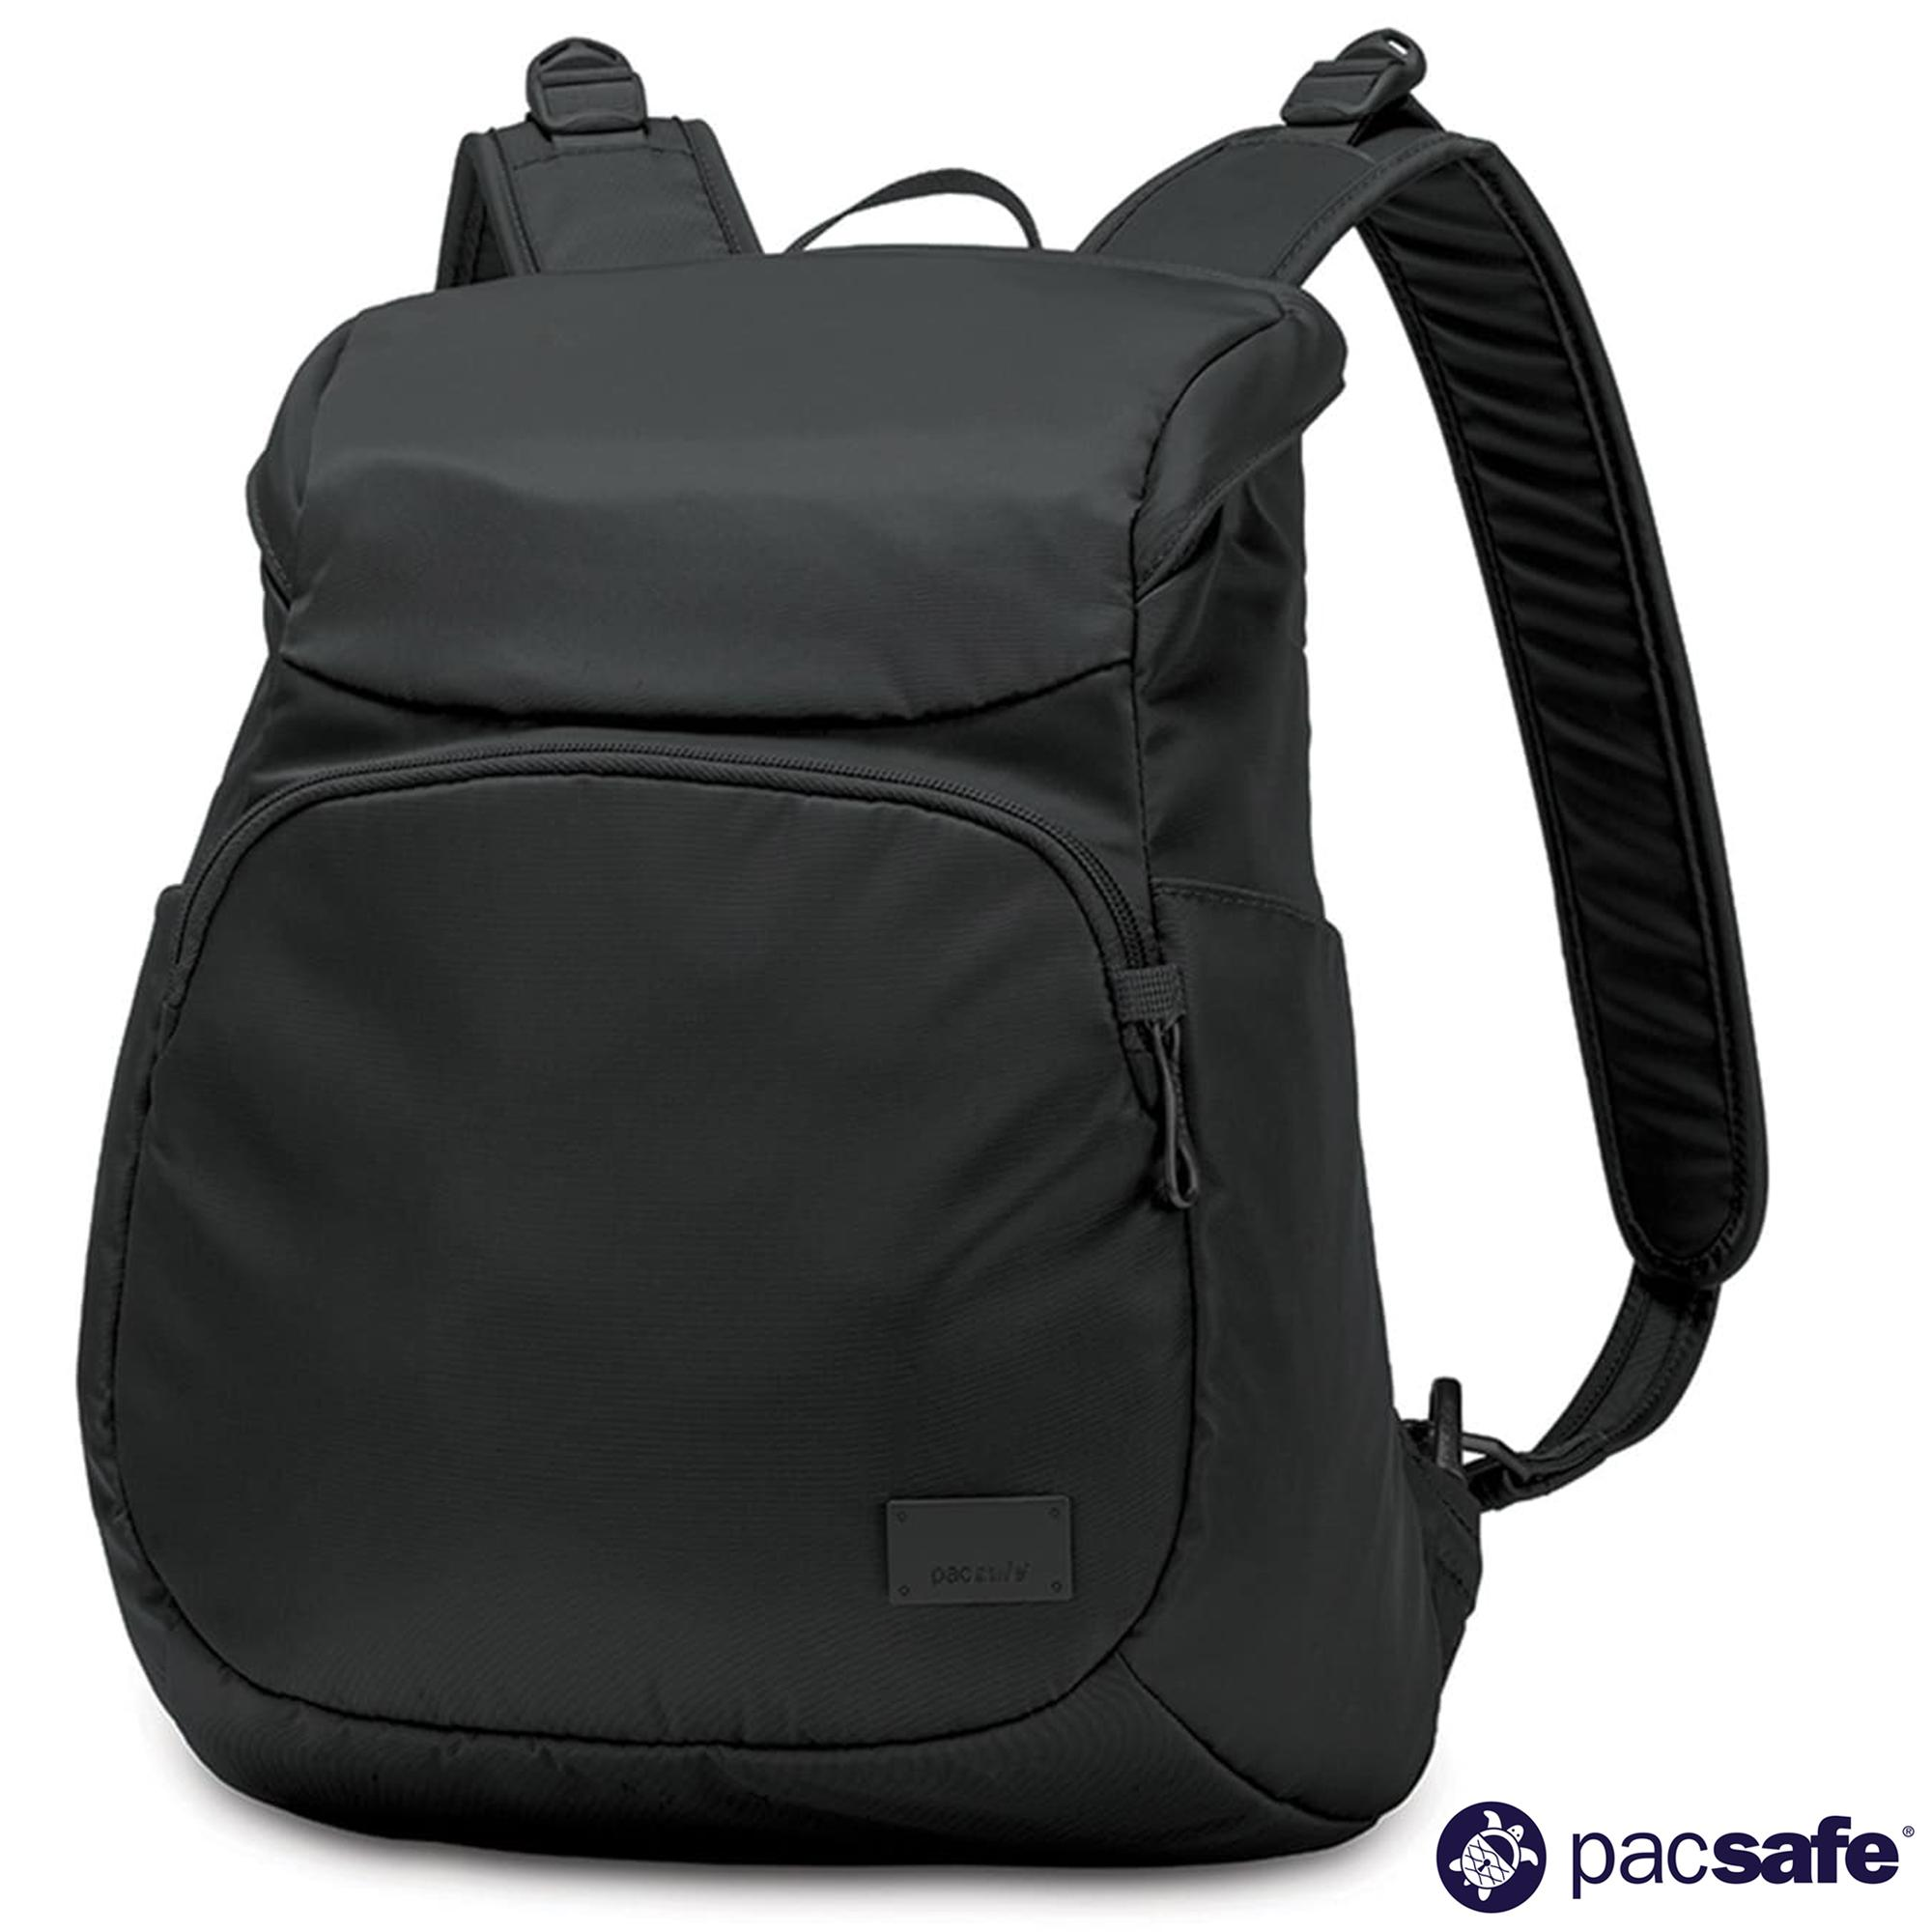 Pacsafe Citysafe Cs300 Anti Theft Compact Backpack Black